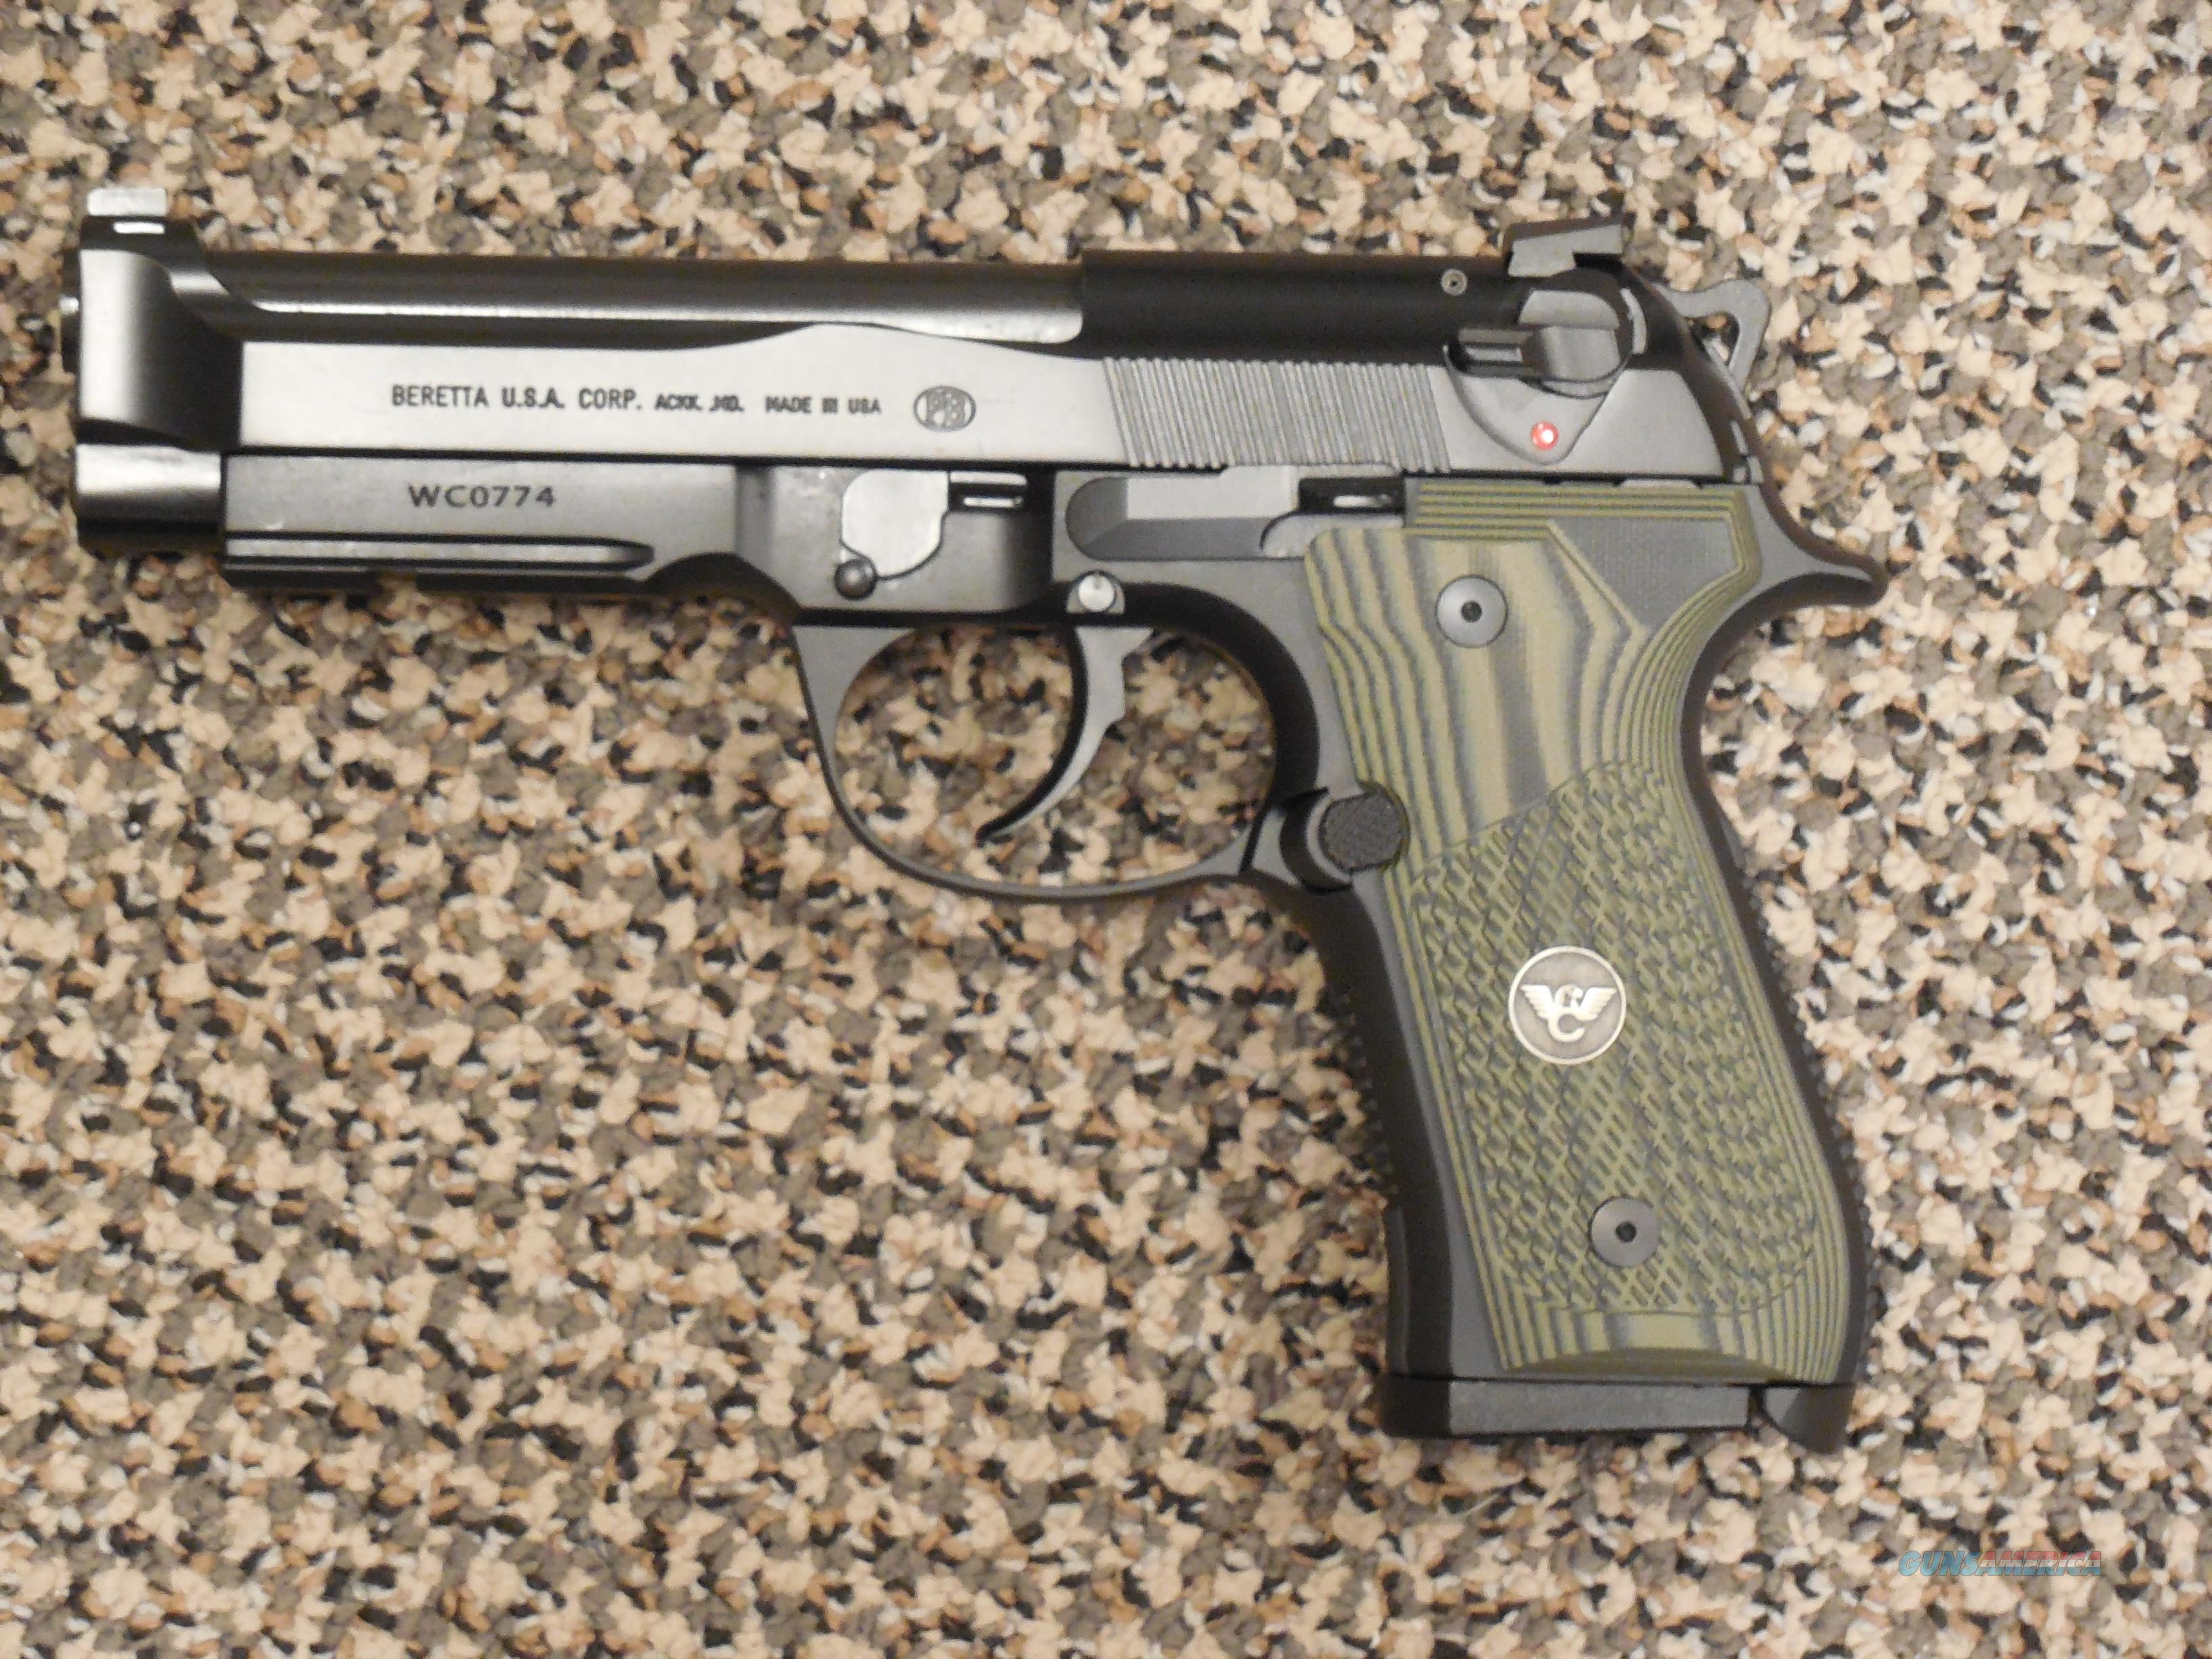 WILSON/BERETTA 92 G BRIGADIER TACTICAL PISTOL WITH OPTIONS  Guns > Pistols > Wilson Combat Pistols